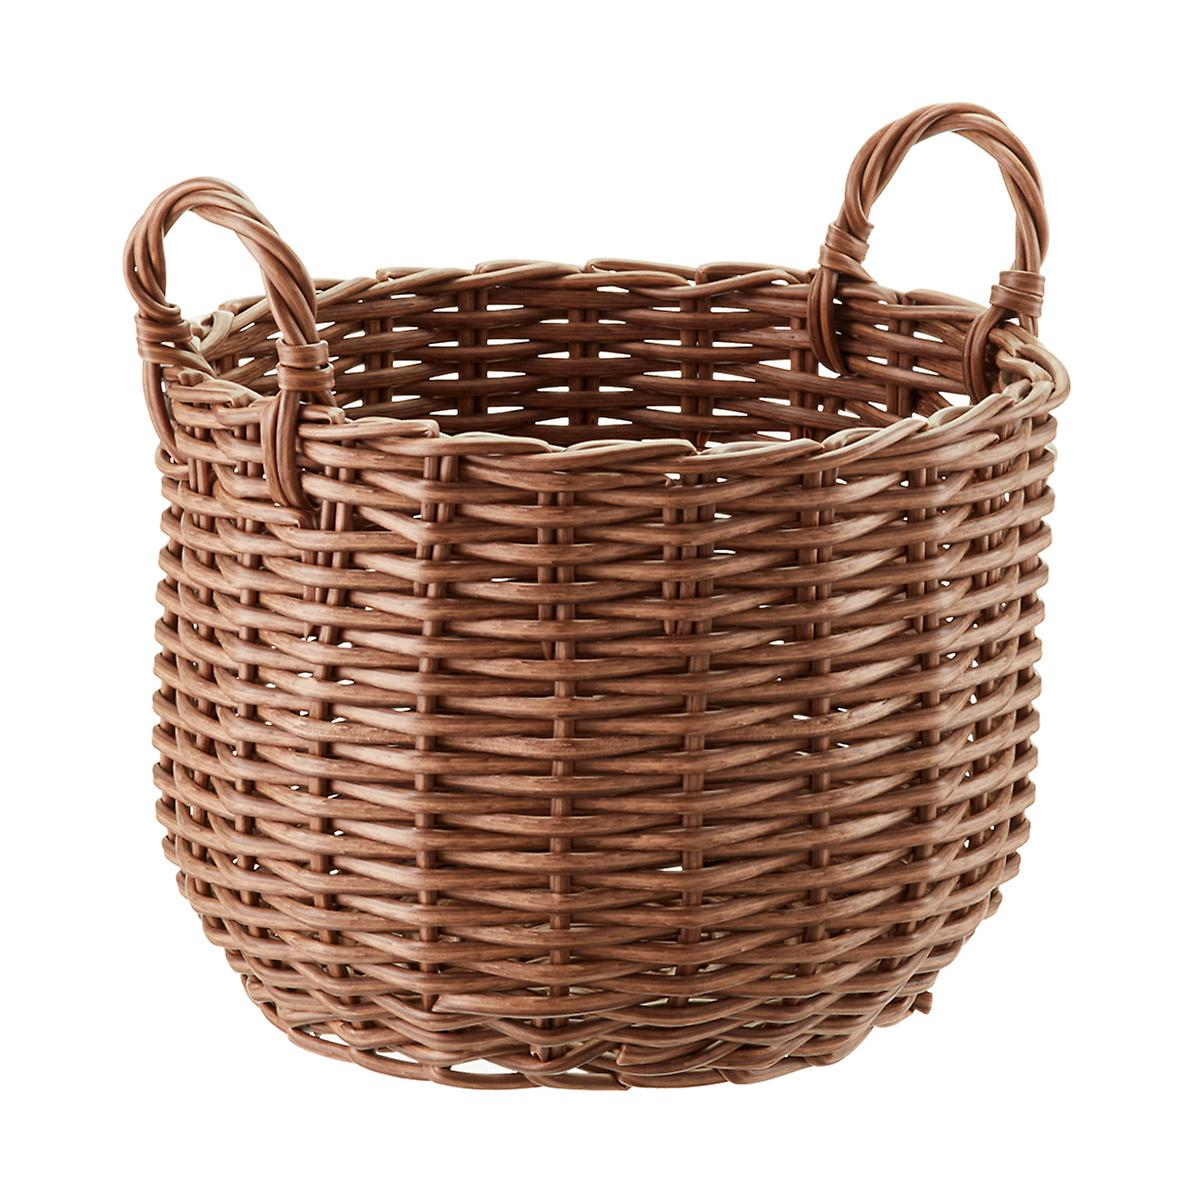 Wicker baskets